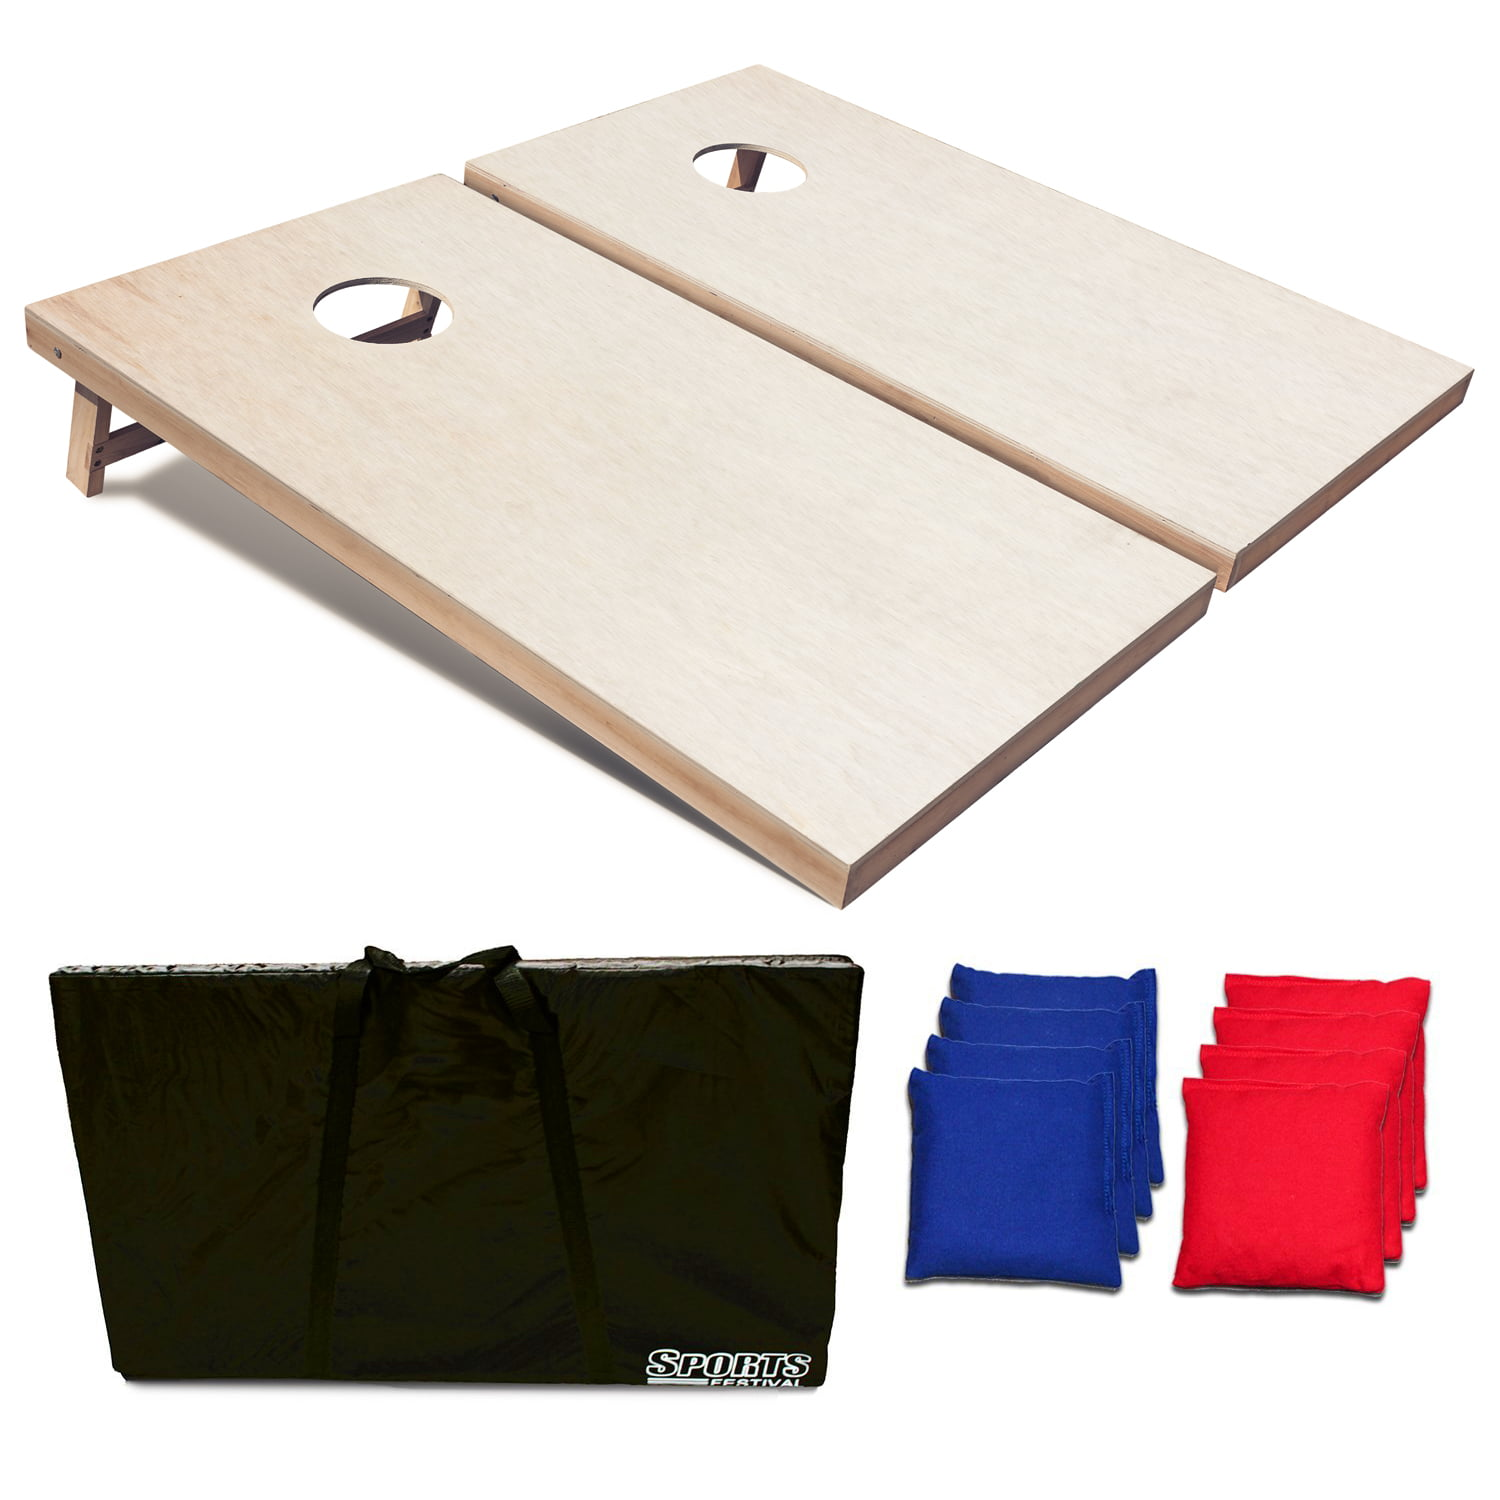 Festival Depot Toss Game Cornhole Set 4x2 ft. by Phelps Group